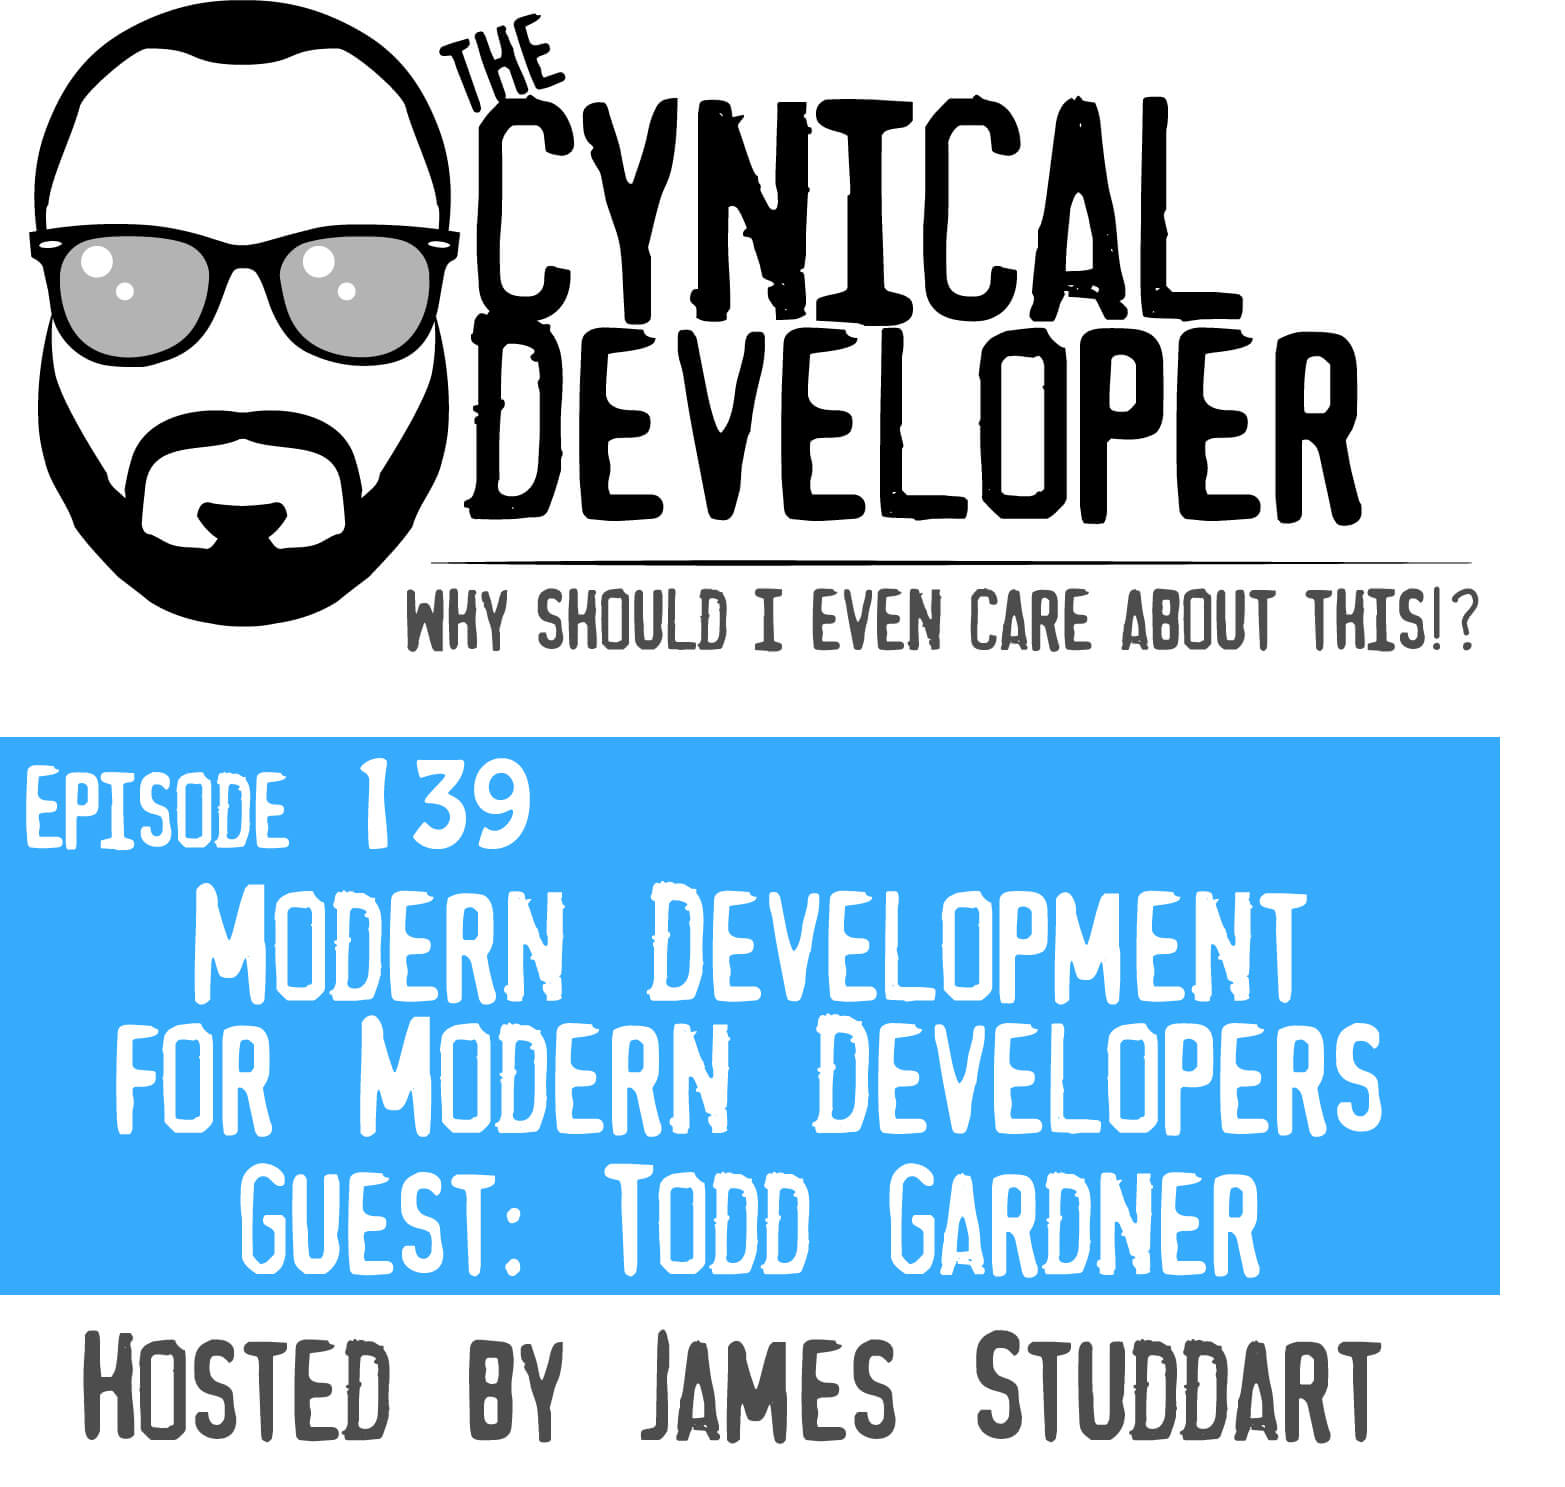 Episode 139 - Modern Development for Mordern Developers